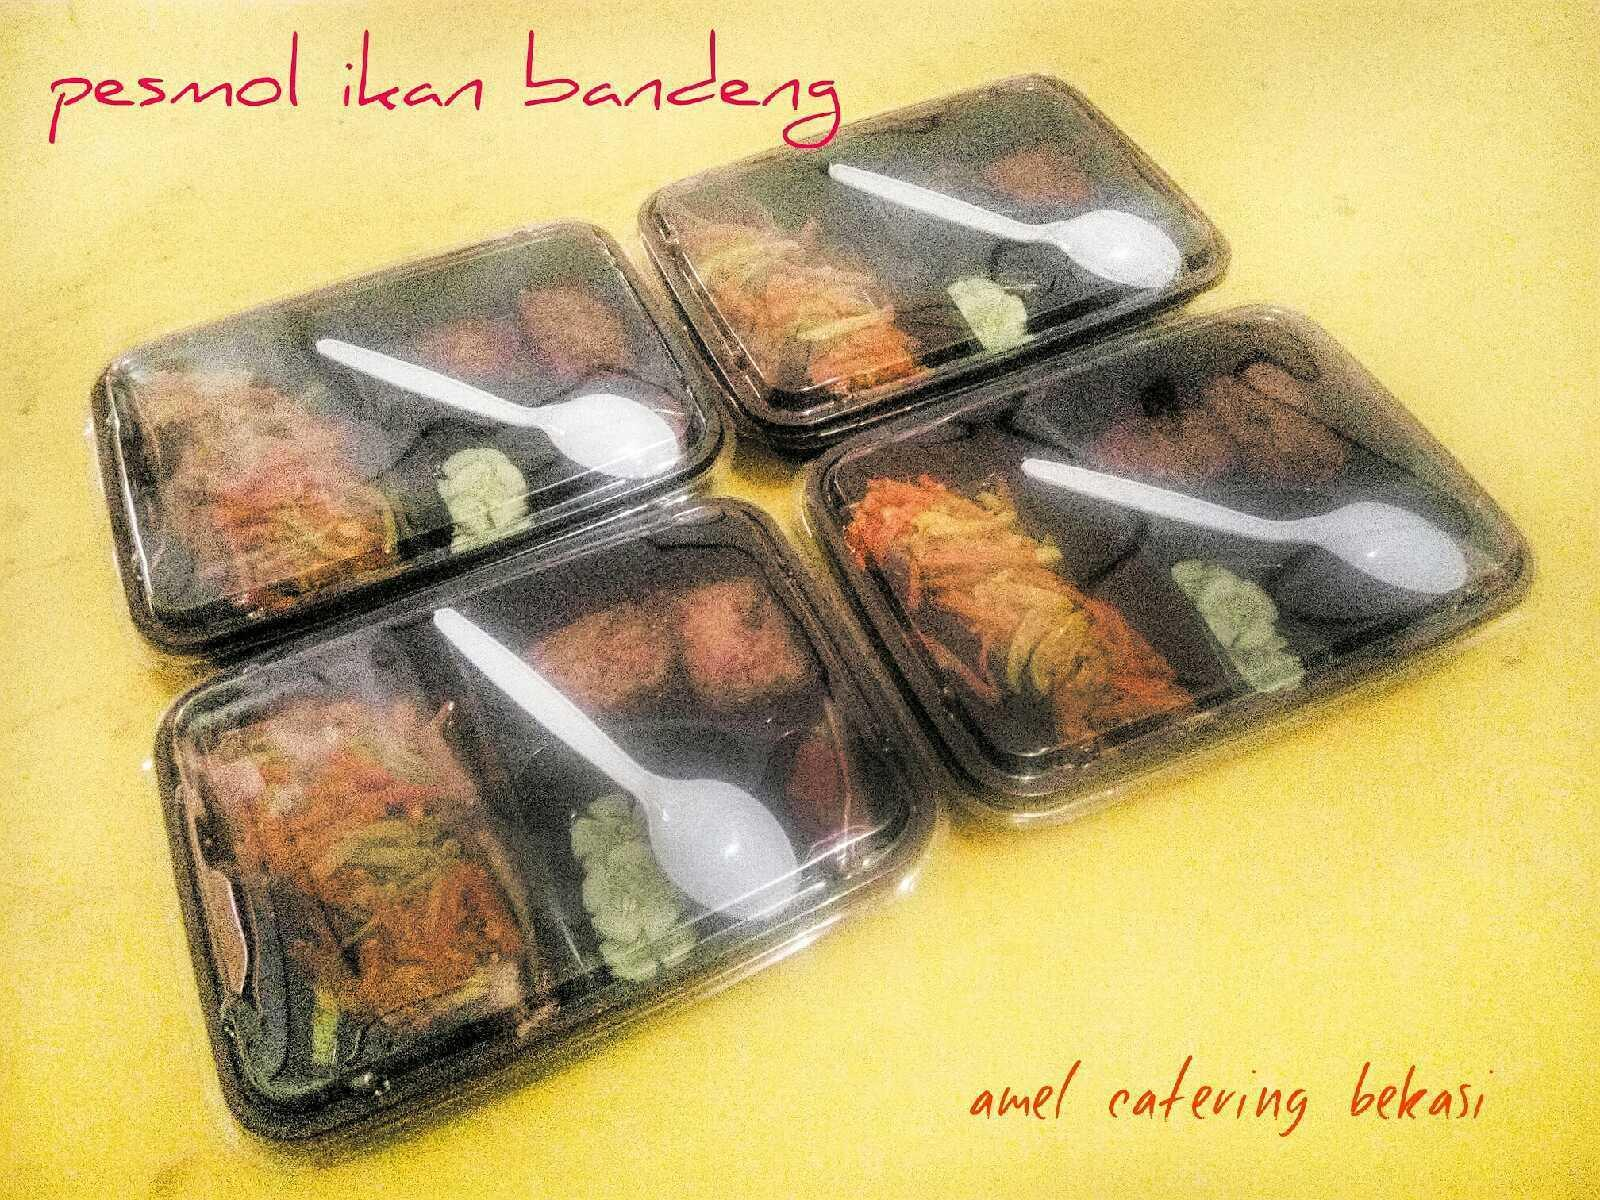 Amel Catering